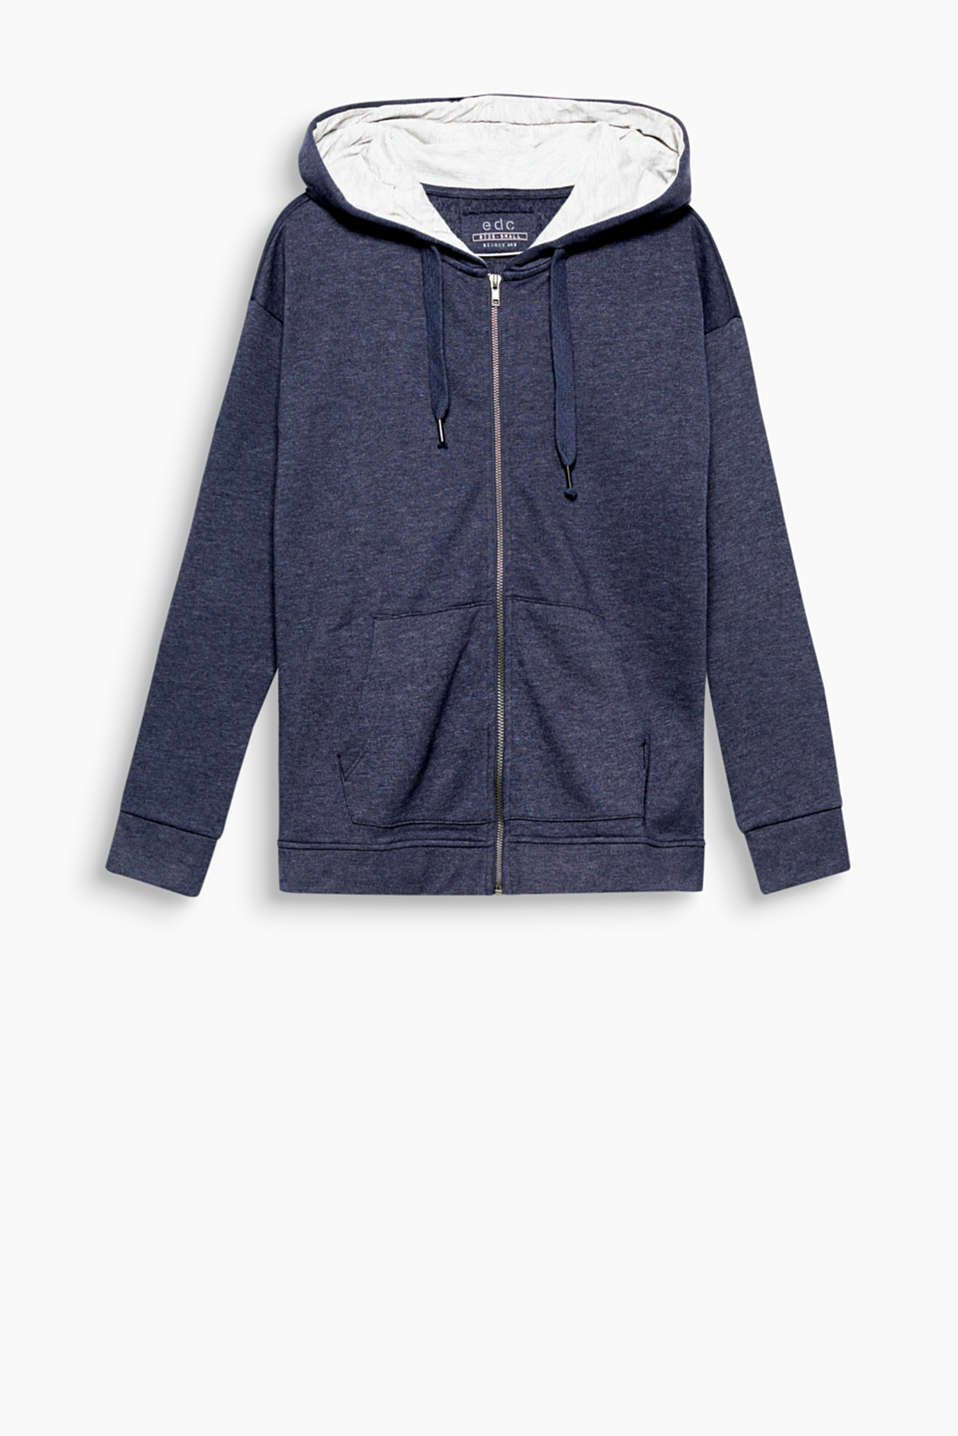 A comfort style for relaxed looks: soft sweatshirt jacket with a contrasting hood